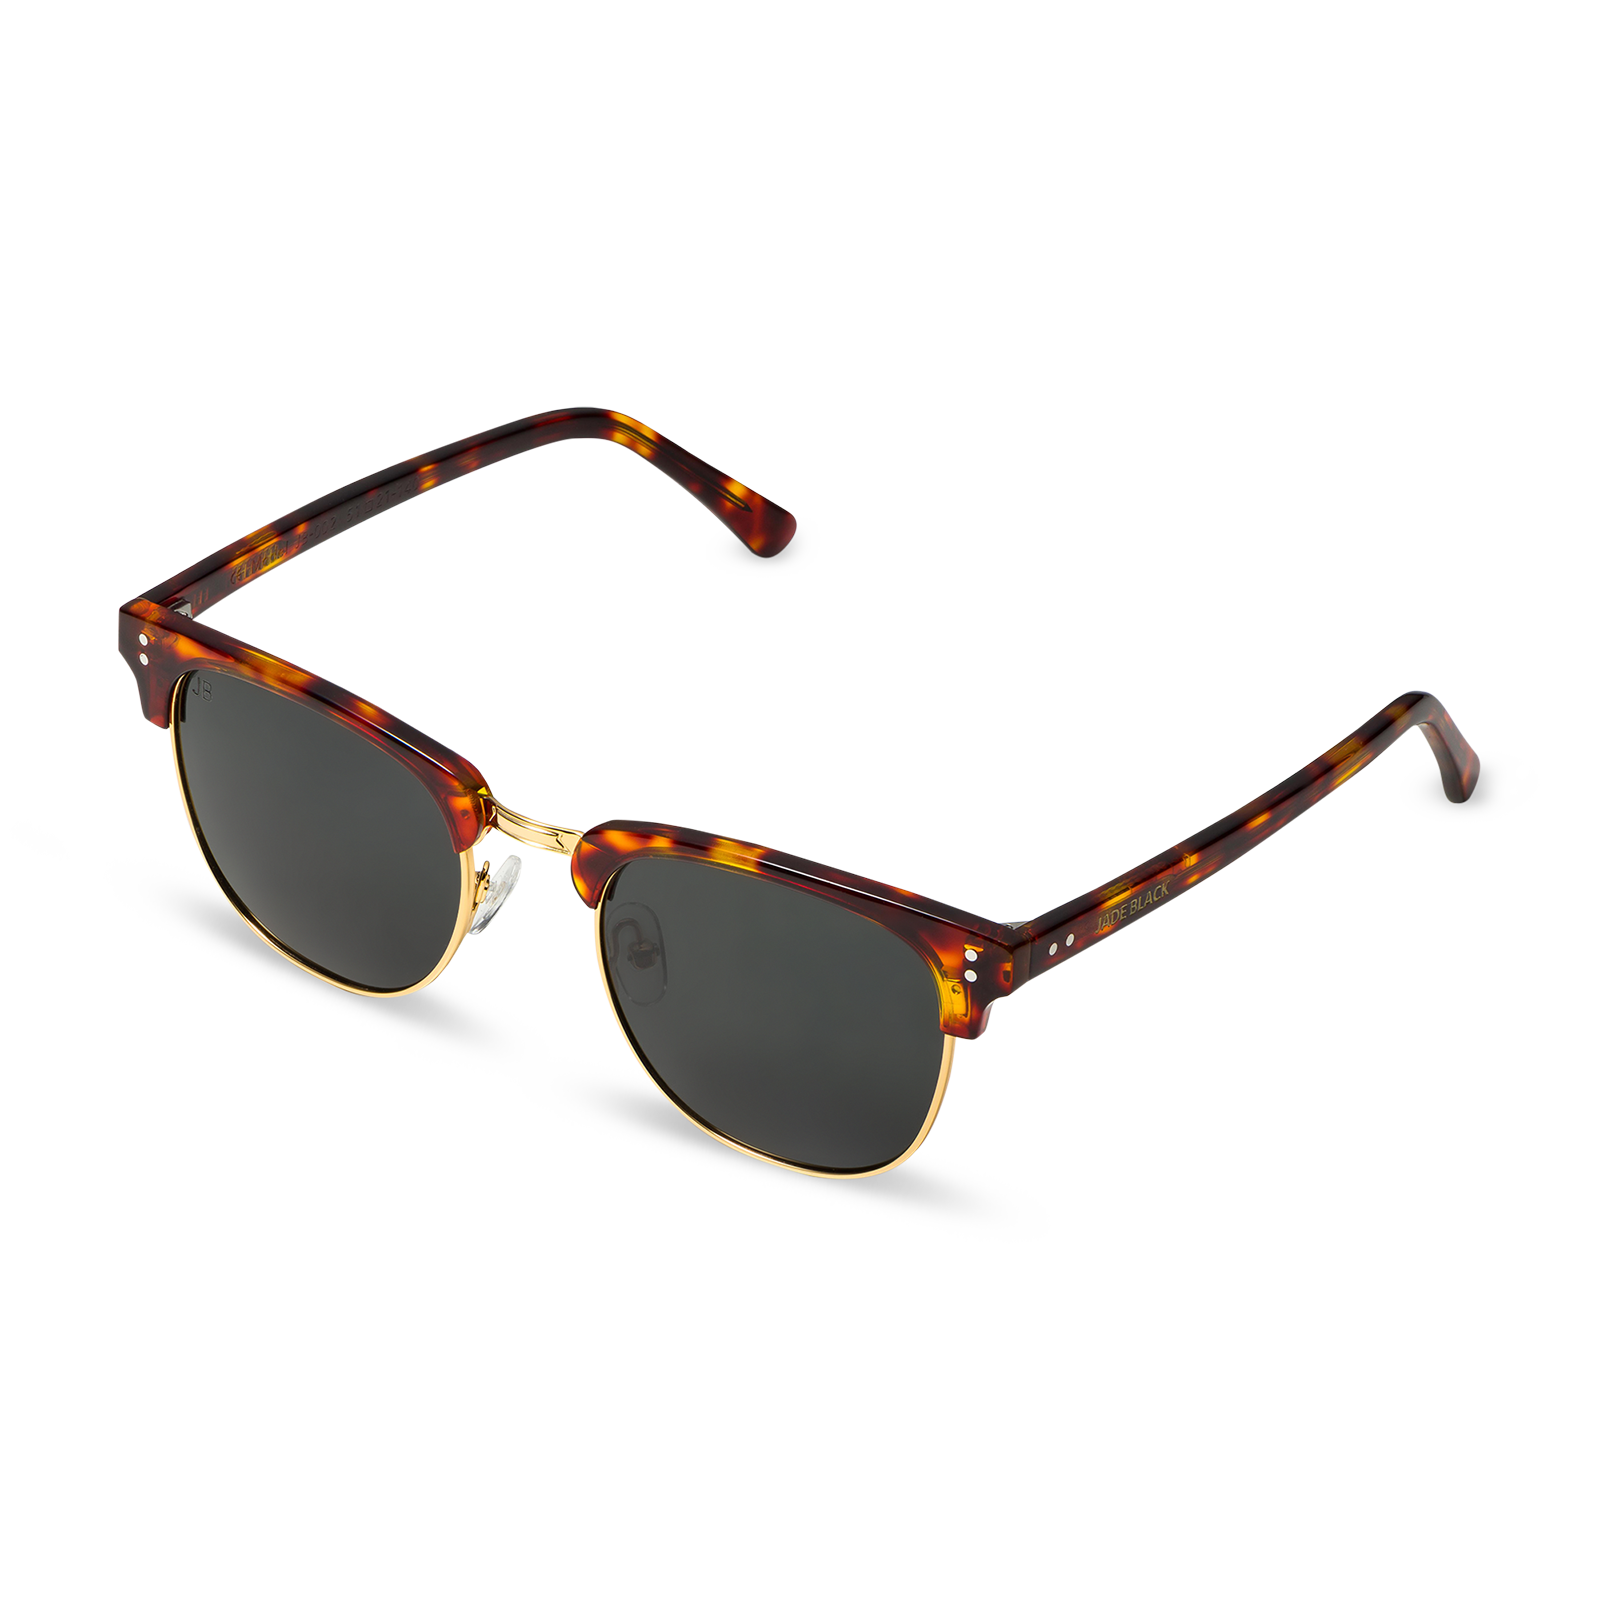 sunglass product photo, sunglasses product photo, spectacles product photo, optical instrument product photo